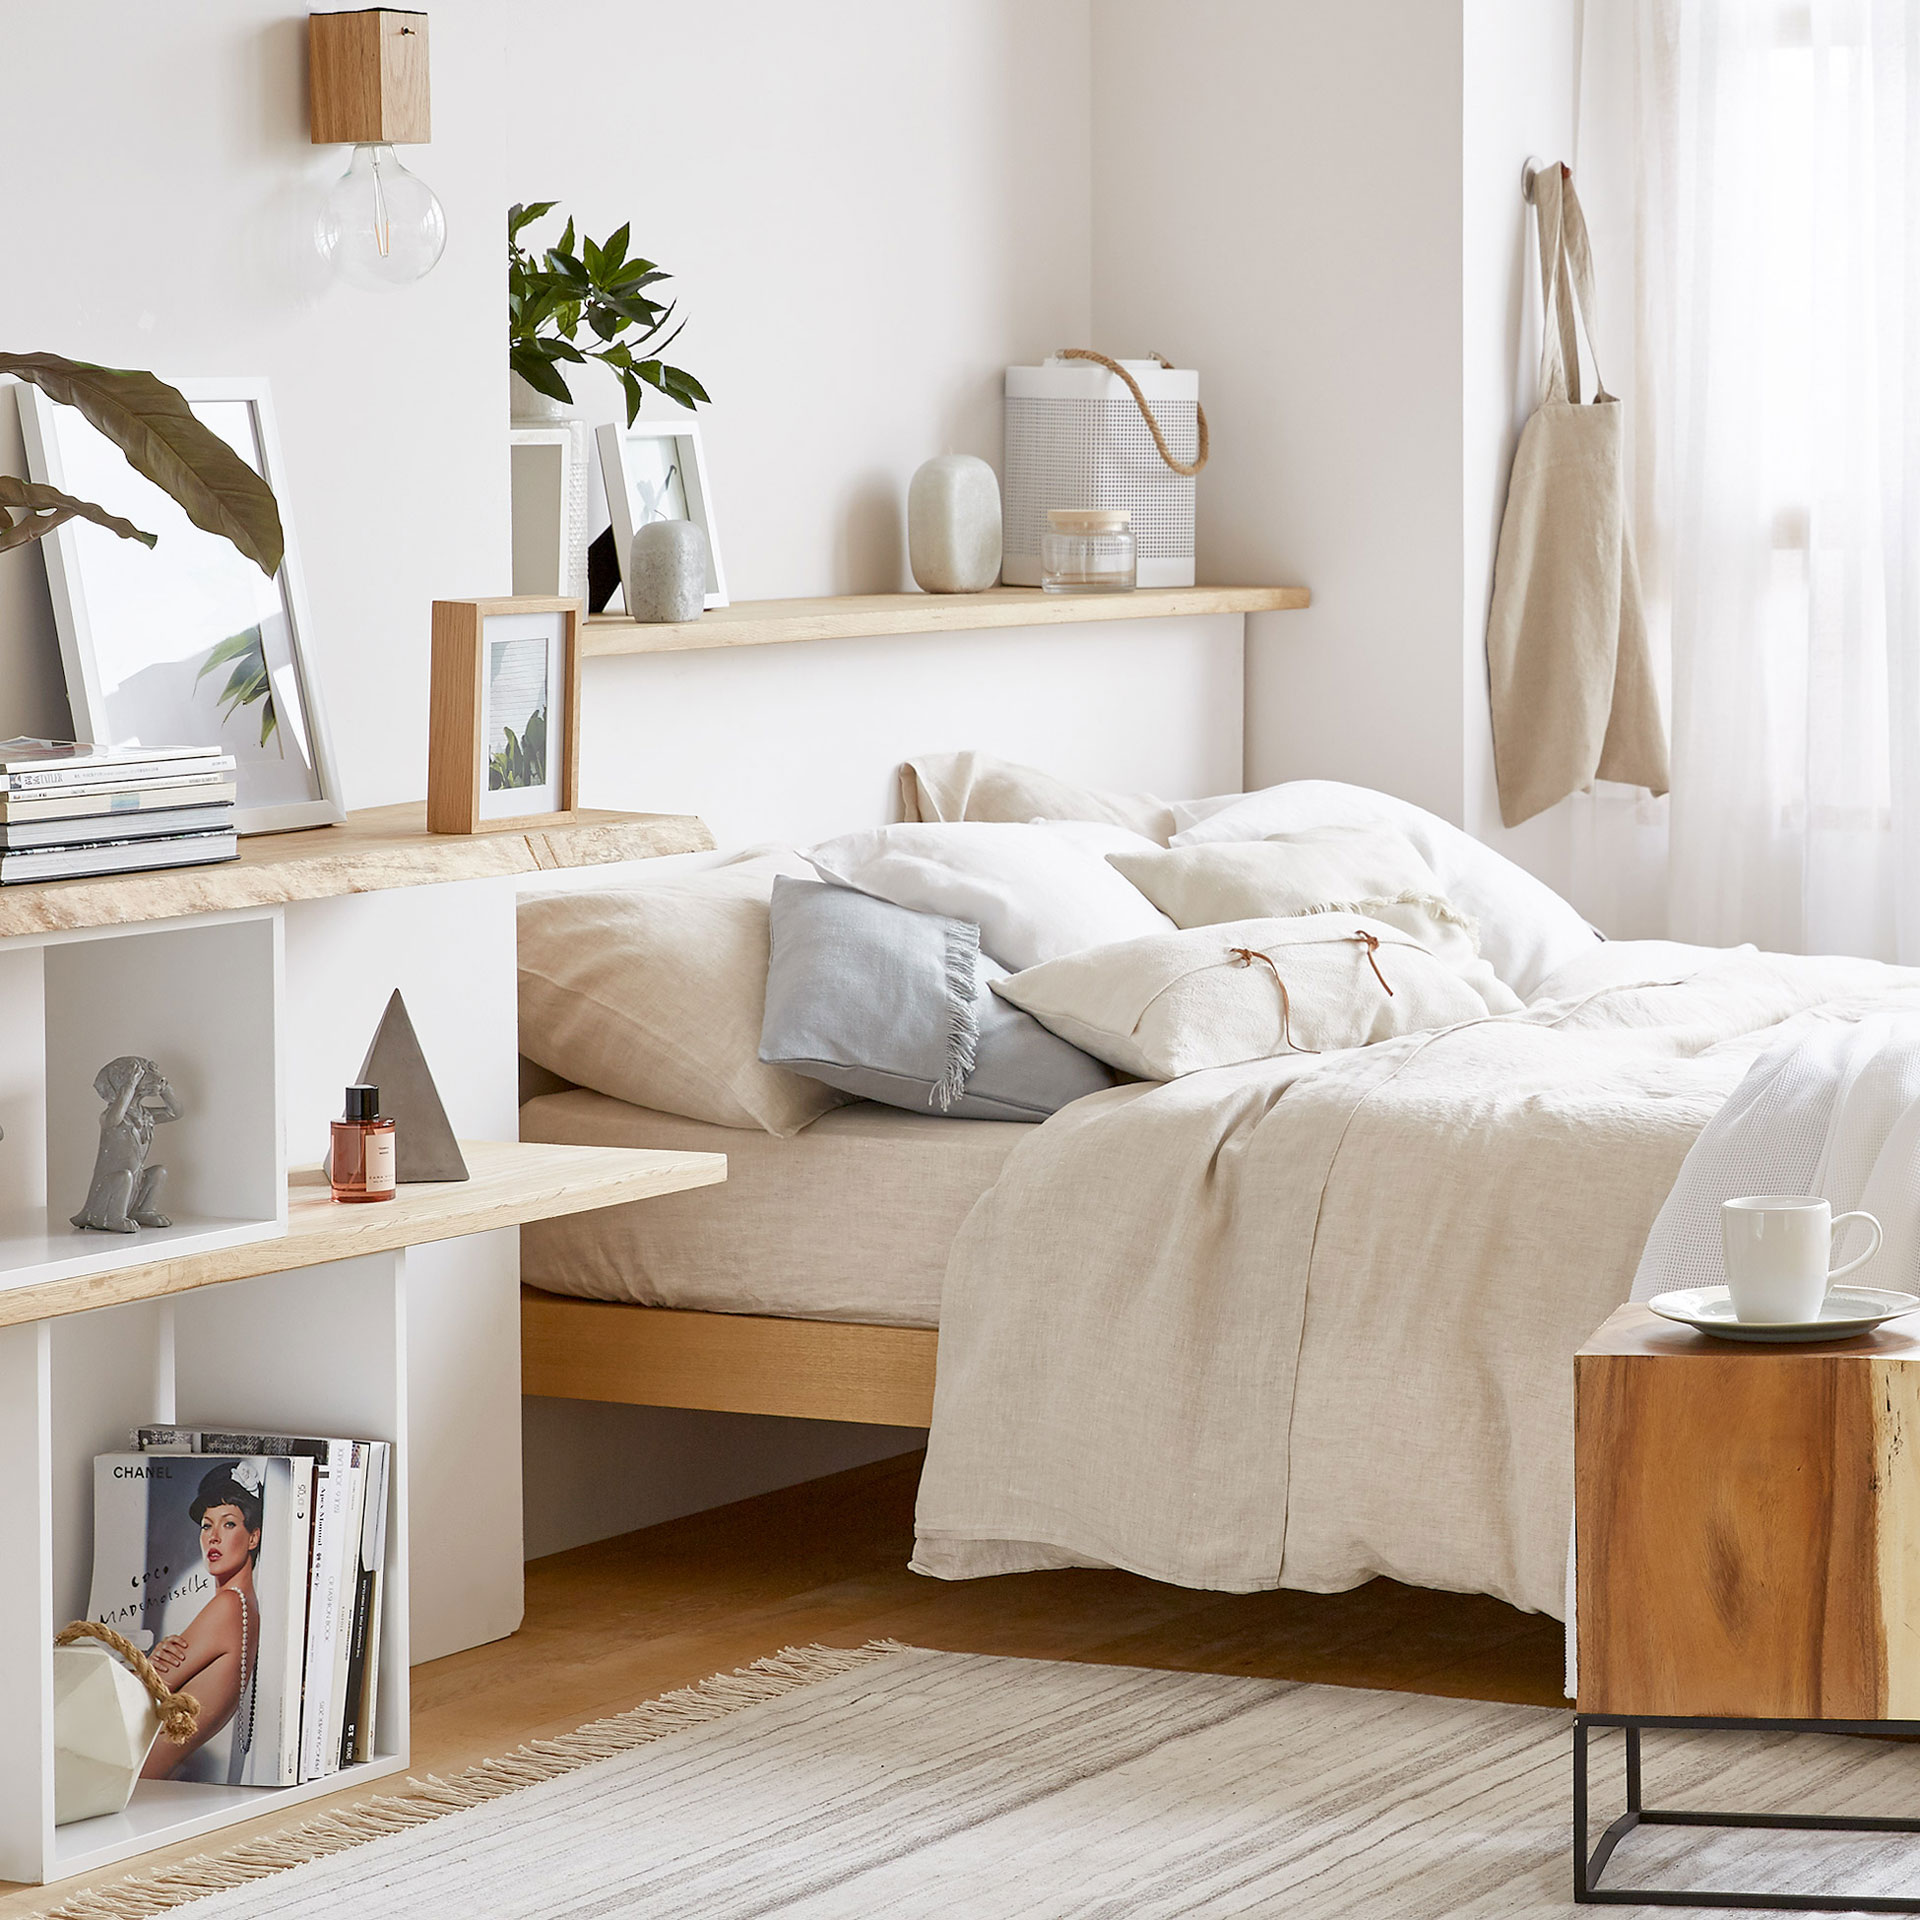 zara home teppich good landkarte von zara home with zara home teppich simple zara home kids. Black Bedroom Furniture Sets. Home Design Ideas